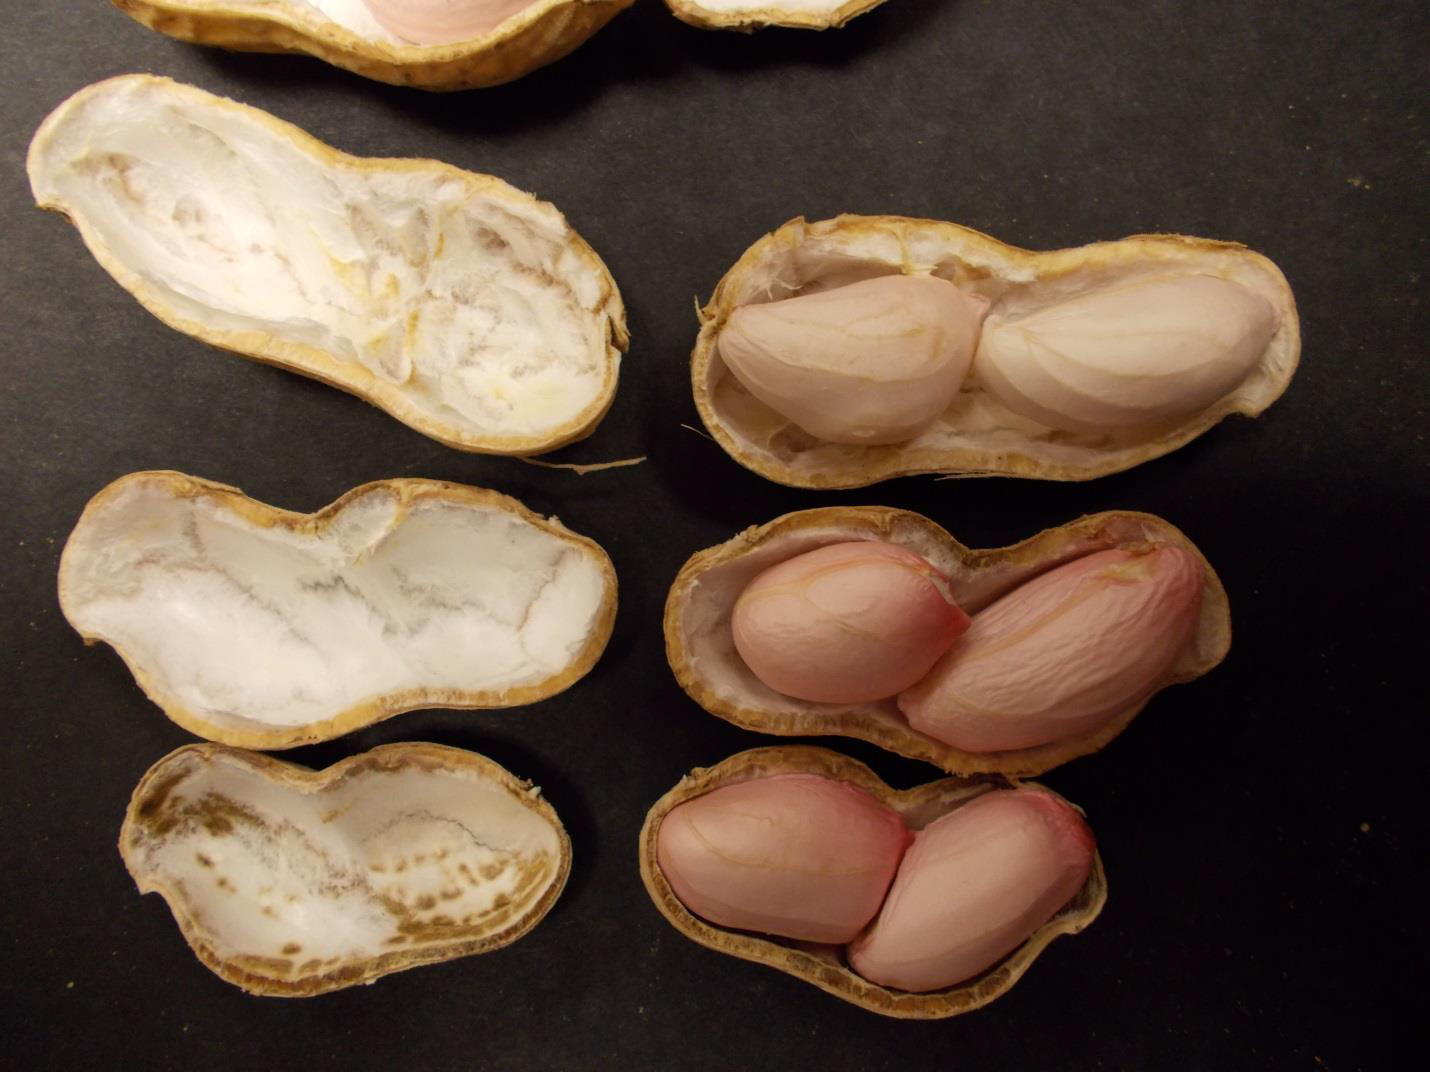 Various levels of pod maturation for Virginia and runner market type peanut on September 24